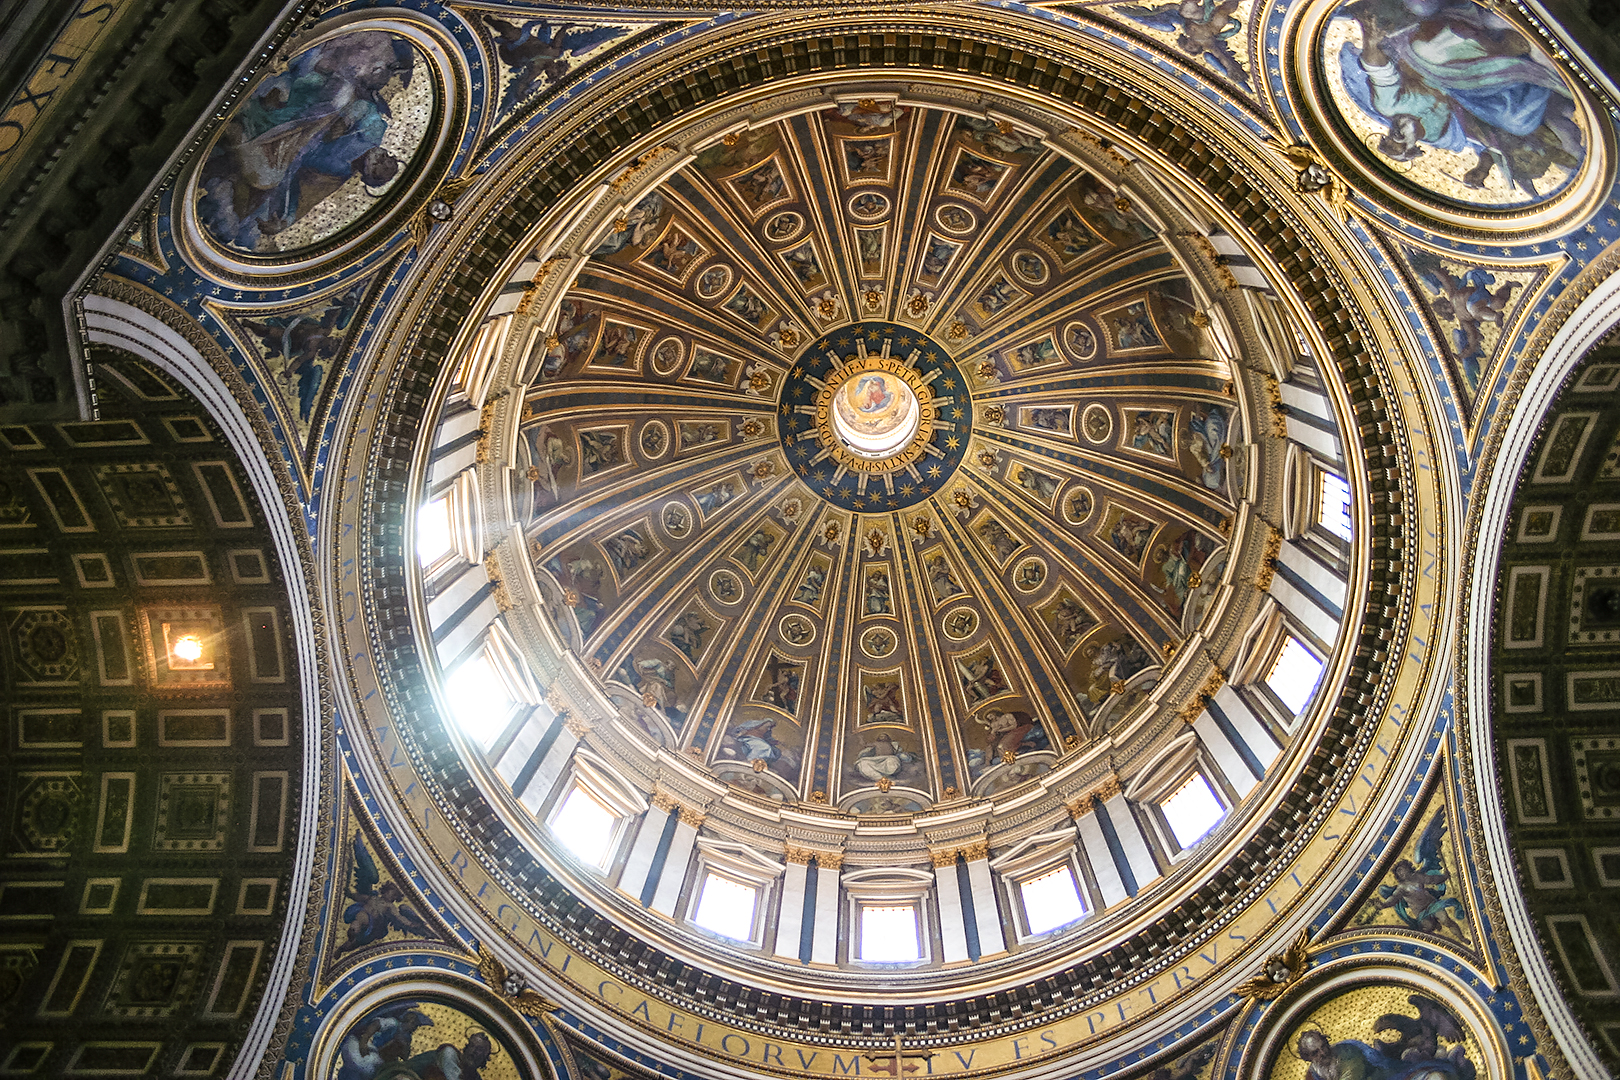 The dome in Saint Peter's Basilica